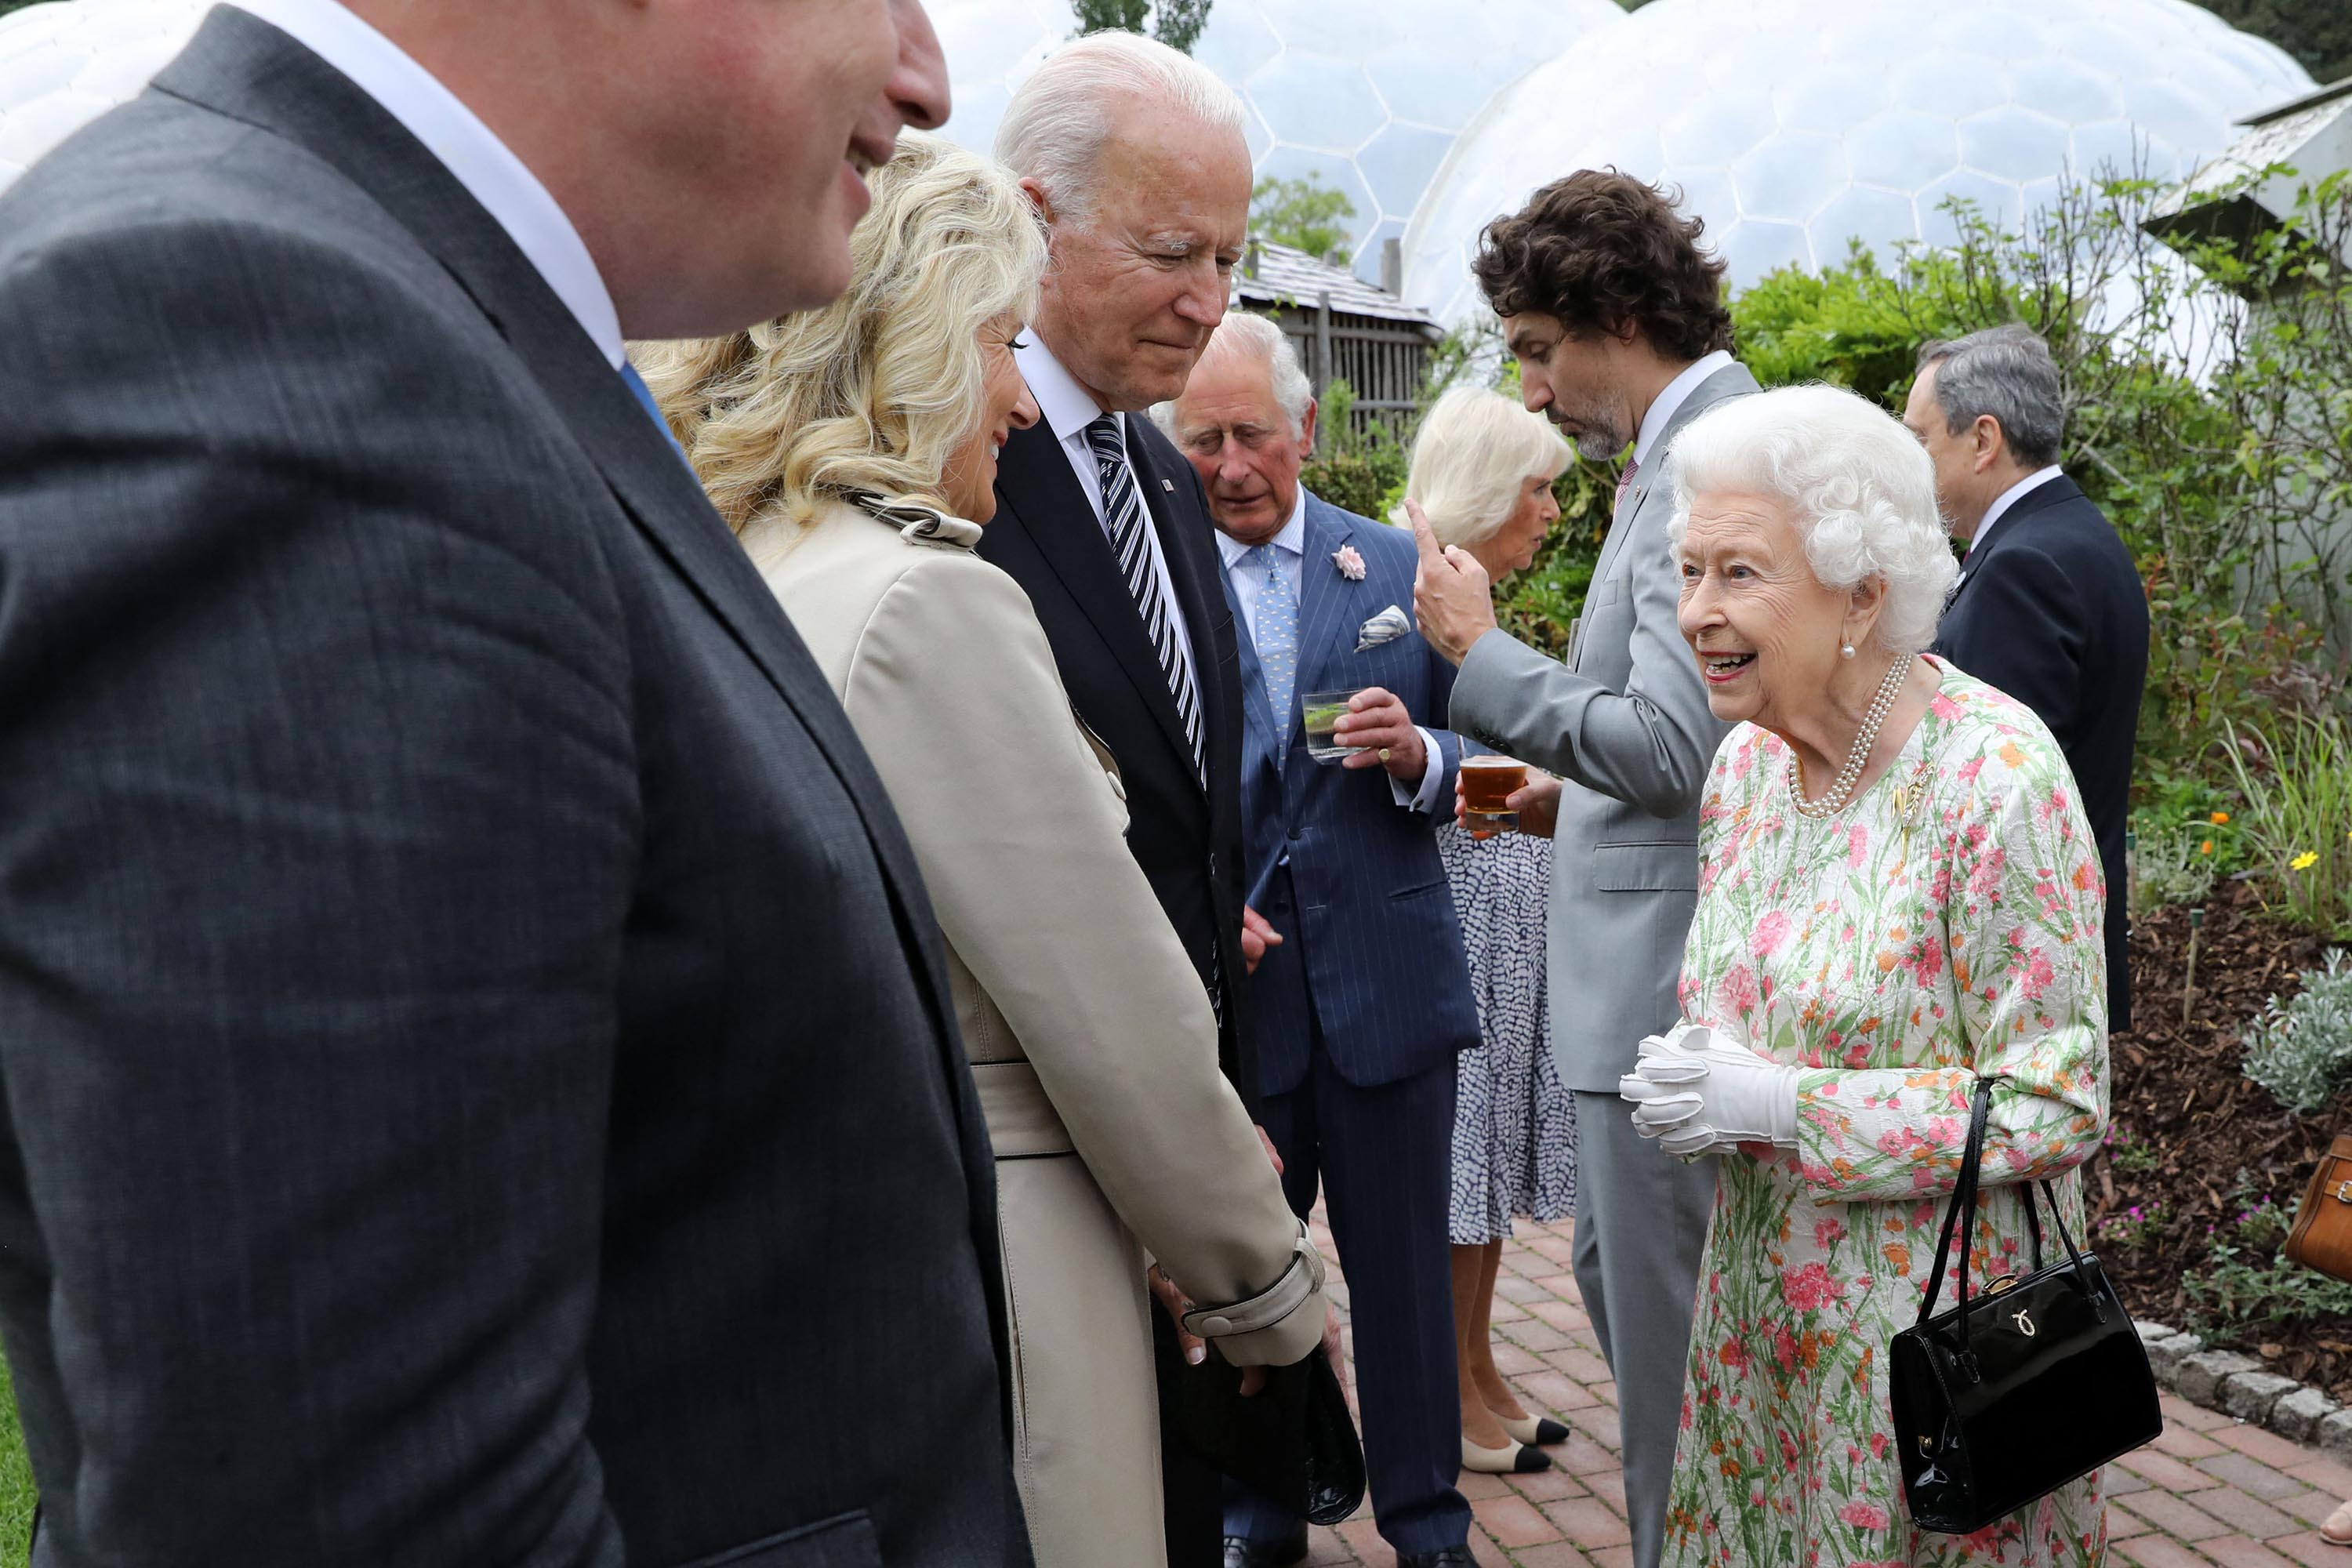 President Biden and the first lady meet Queen Elizabeth II after his first G7 summit